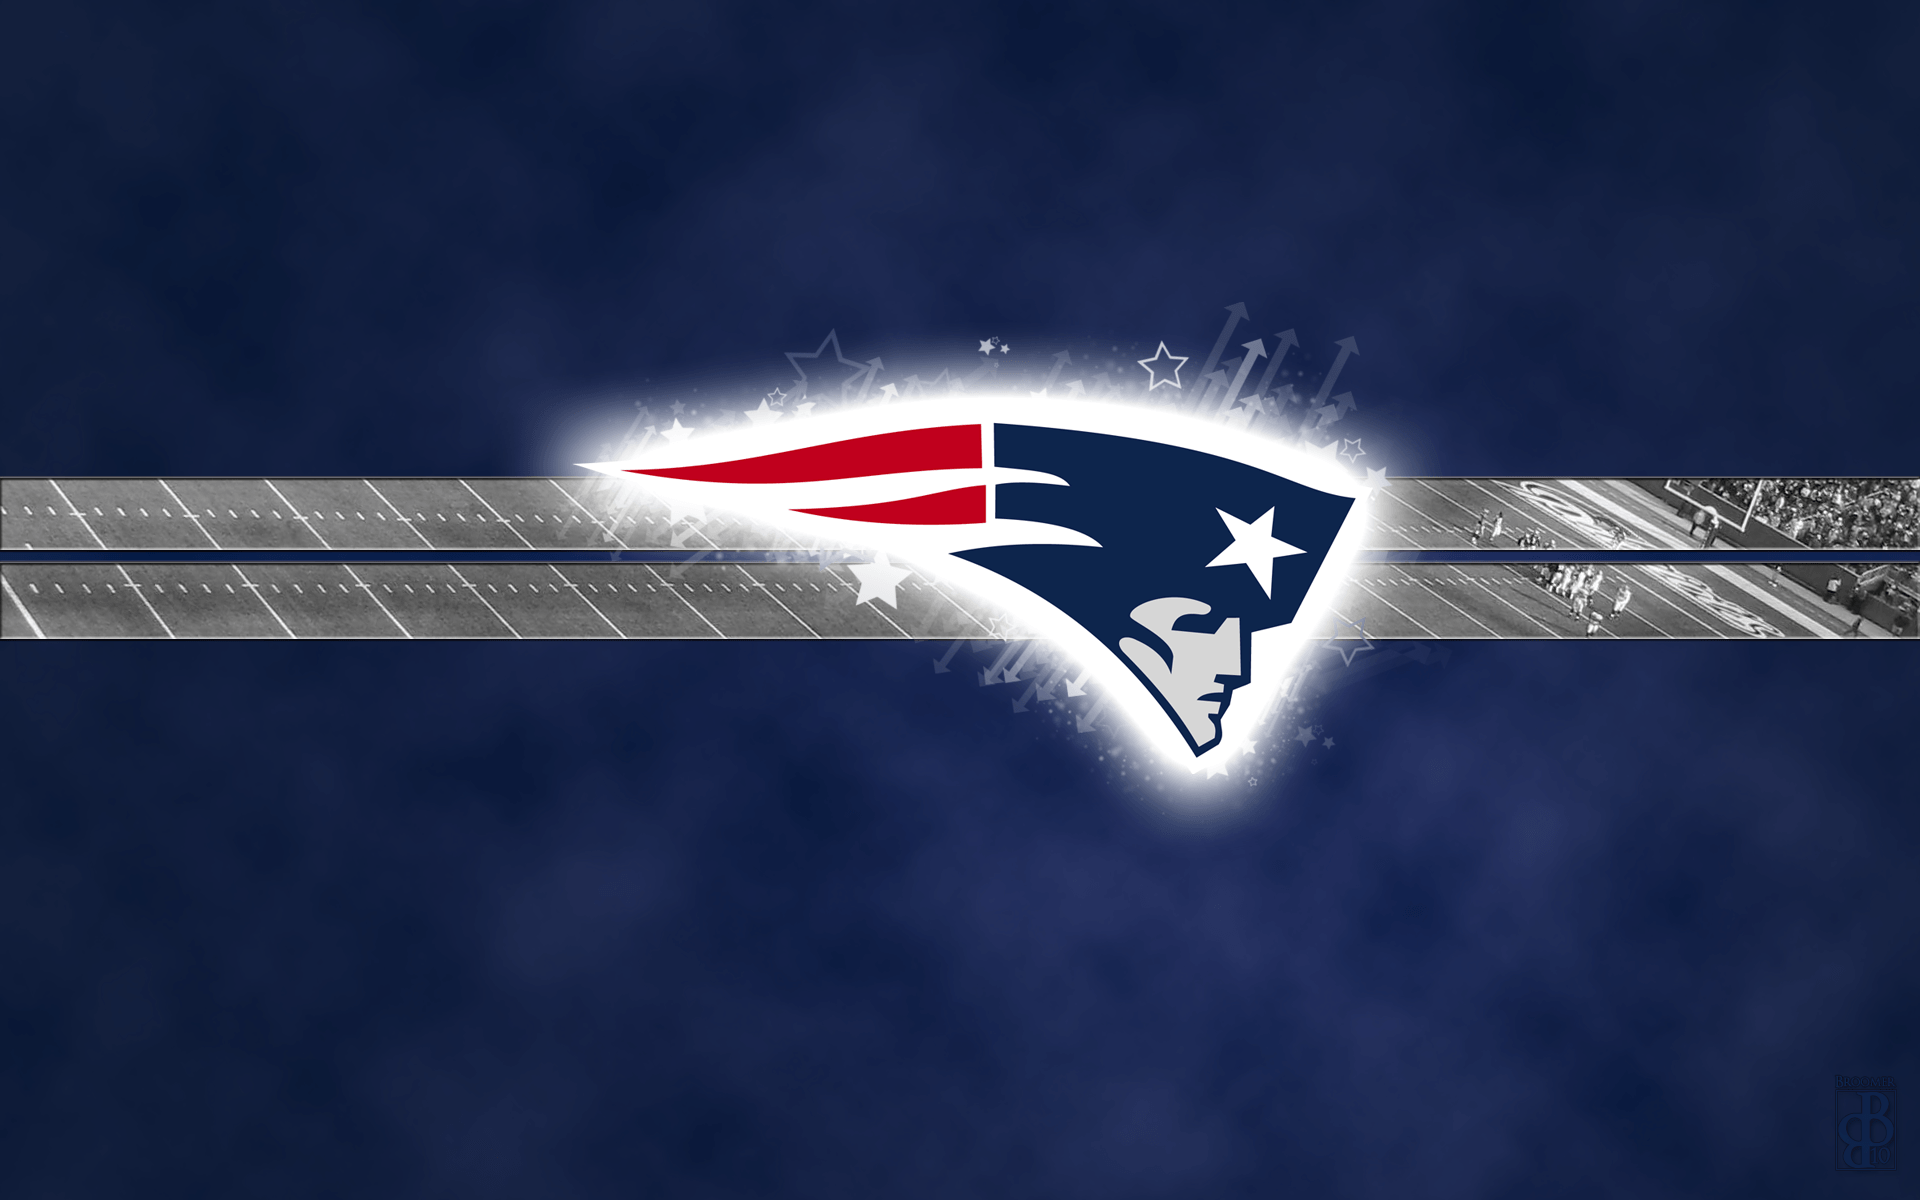 New England Patriots 2015 NFL / Wallpapers Sport 95666 high quality